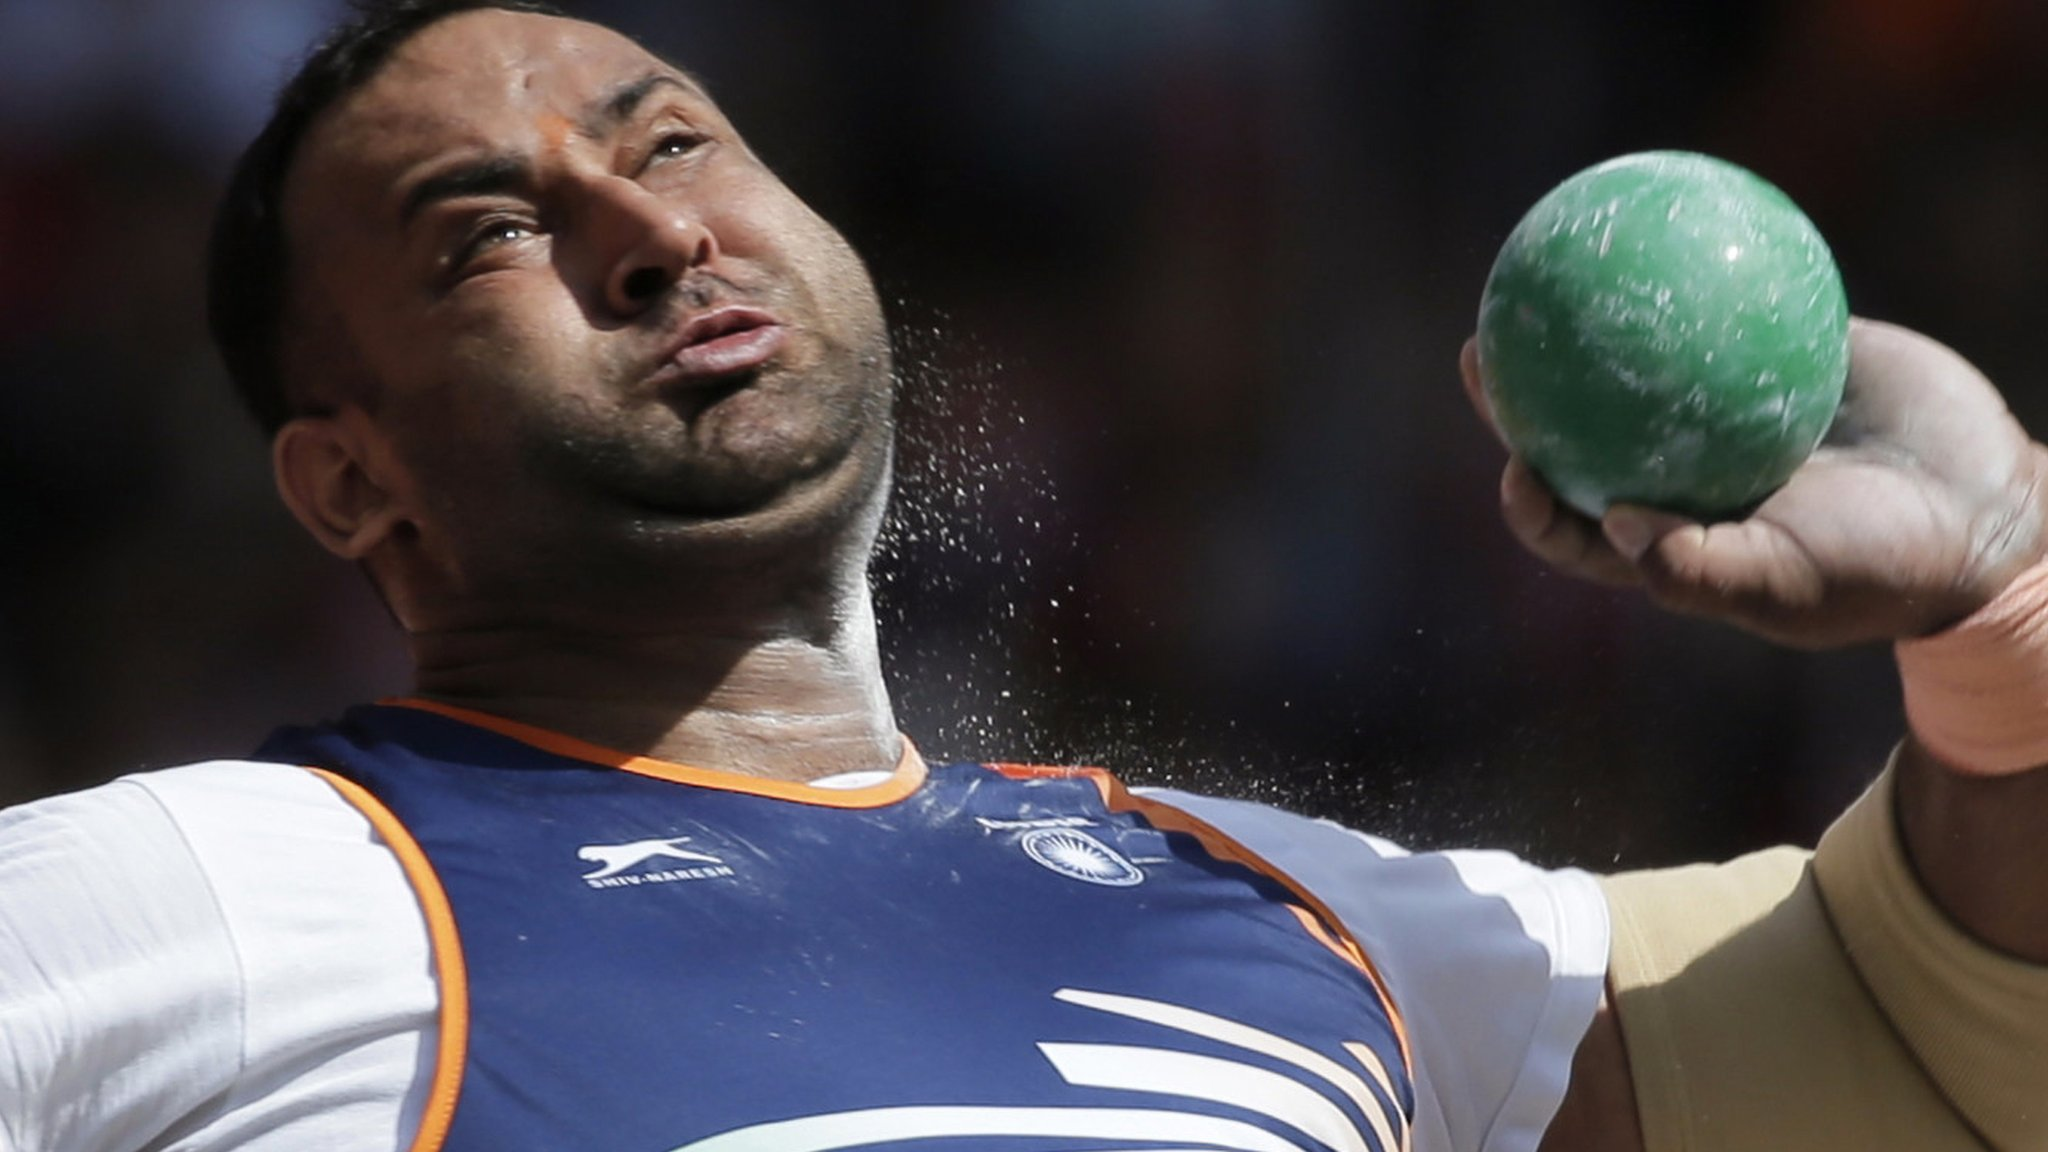 Inderjeet Singh: Indian shot put champion blames positive drug test on conspiracy